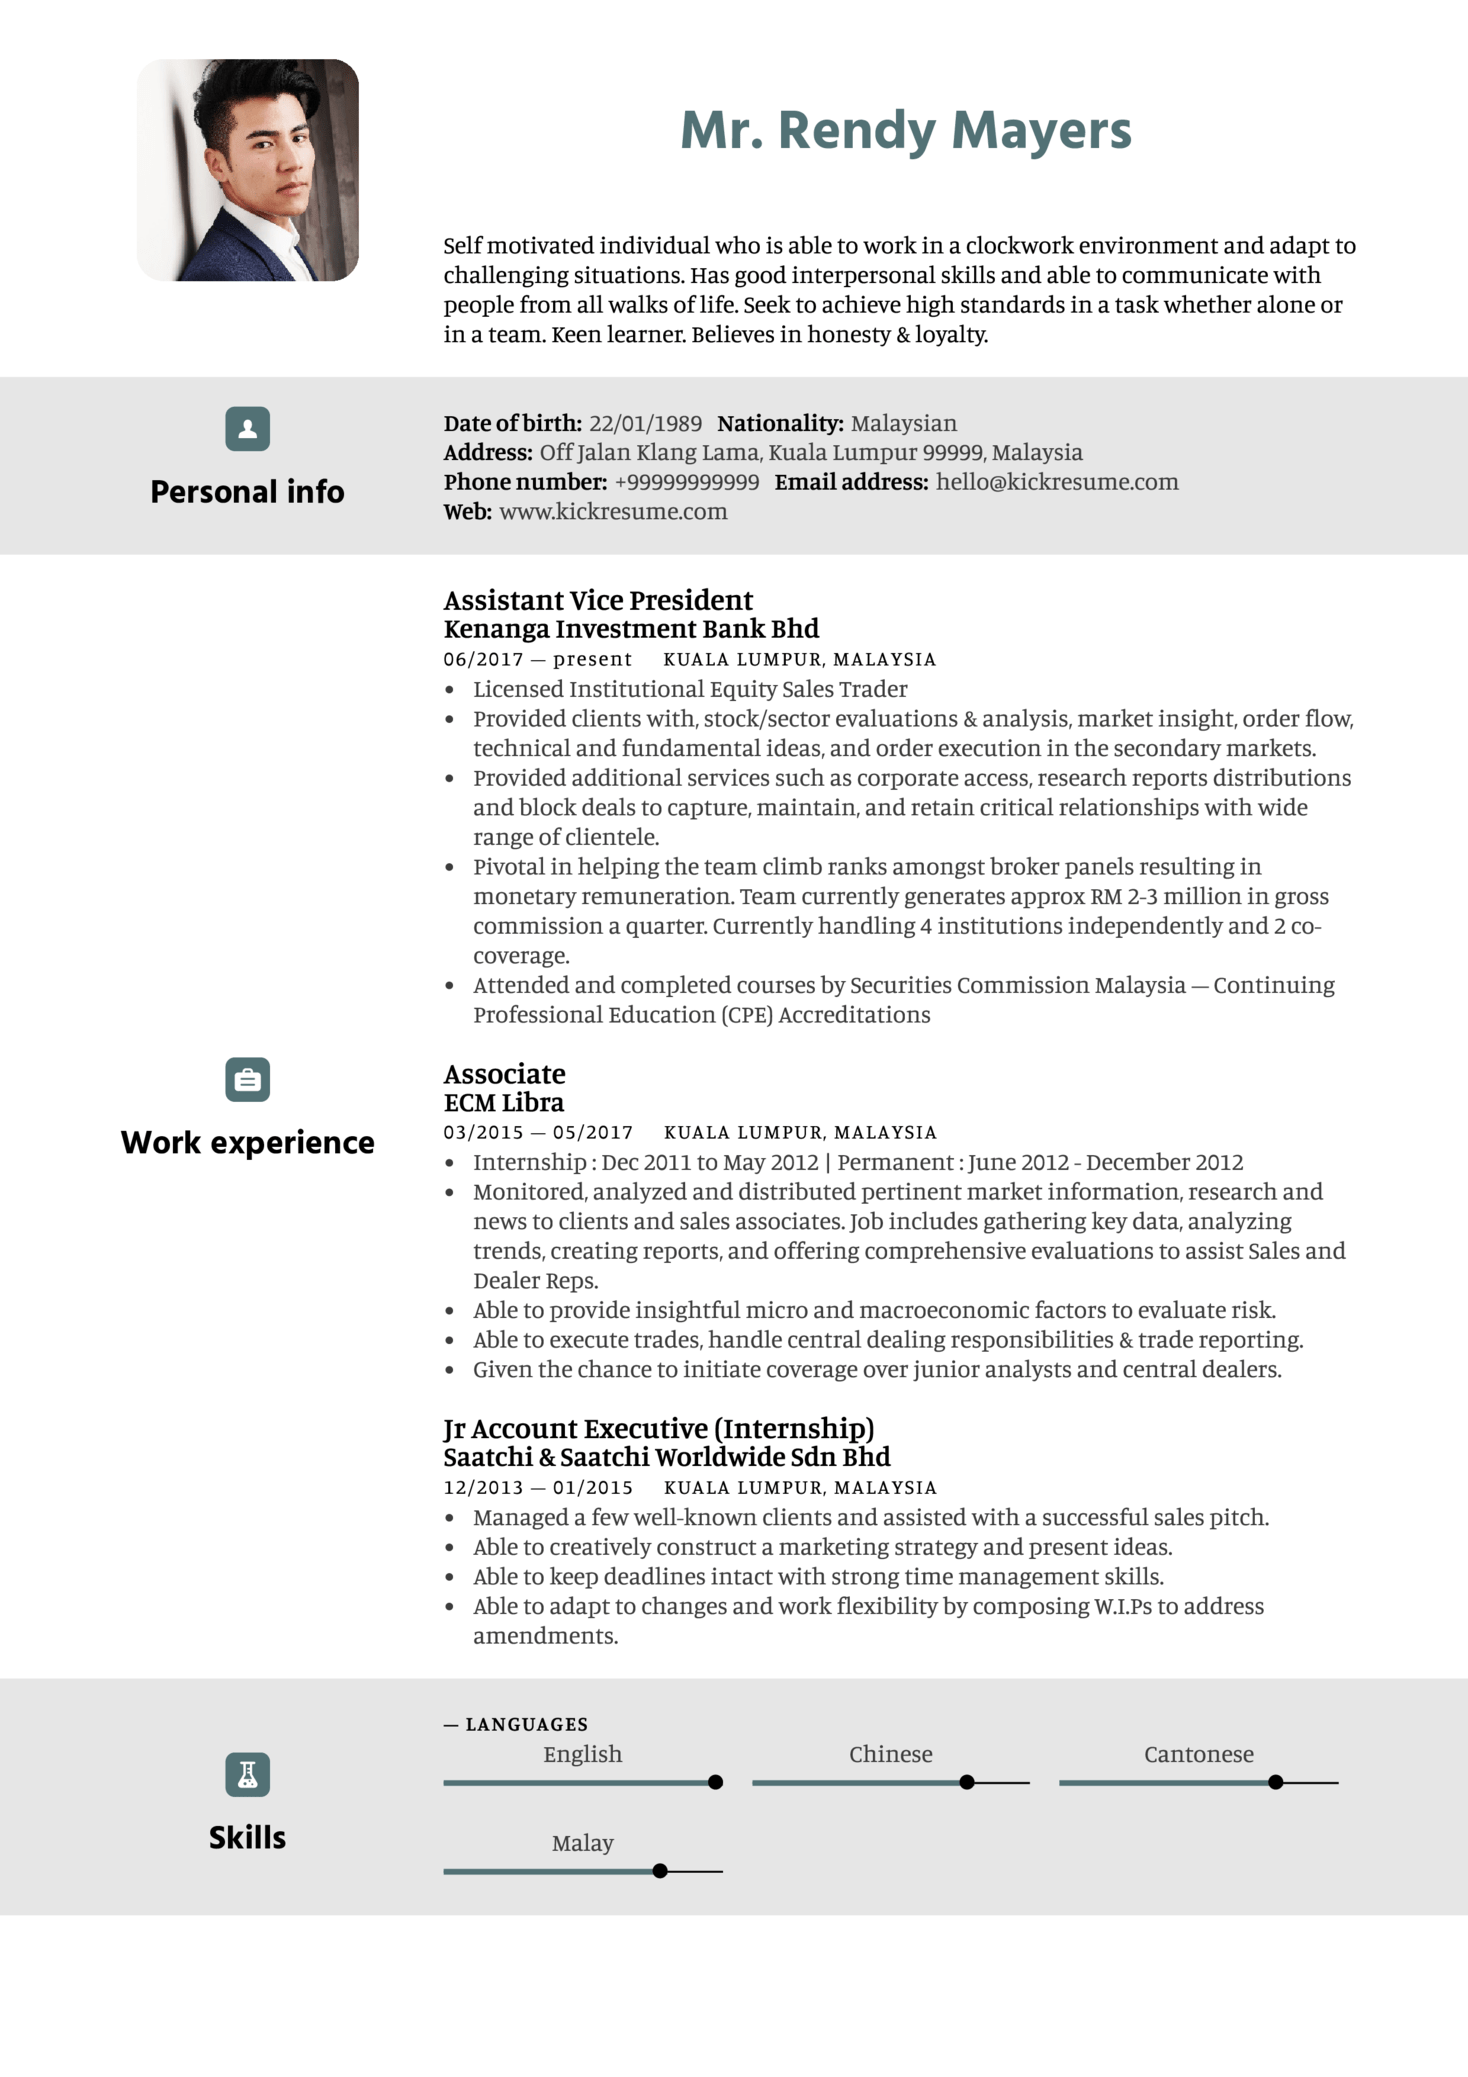 Kenanga Assistant Vice President Resume Sample (parte 1)